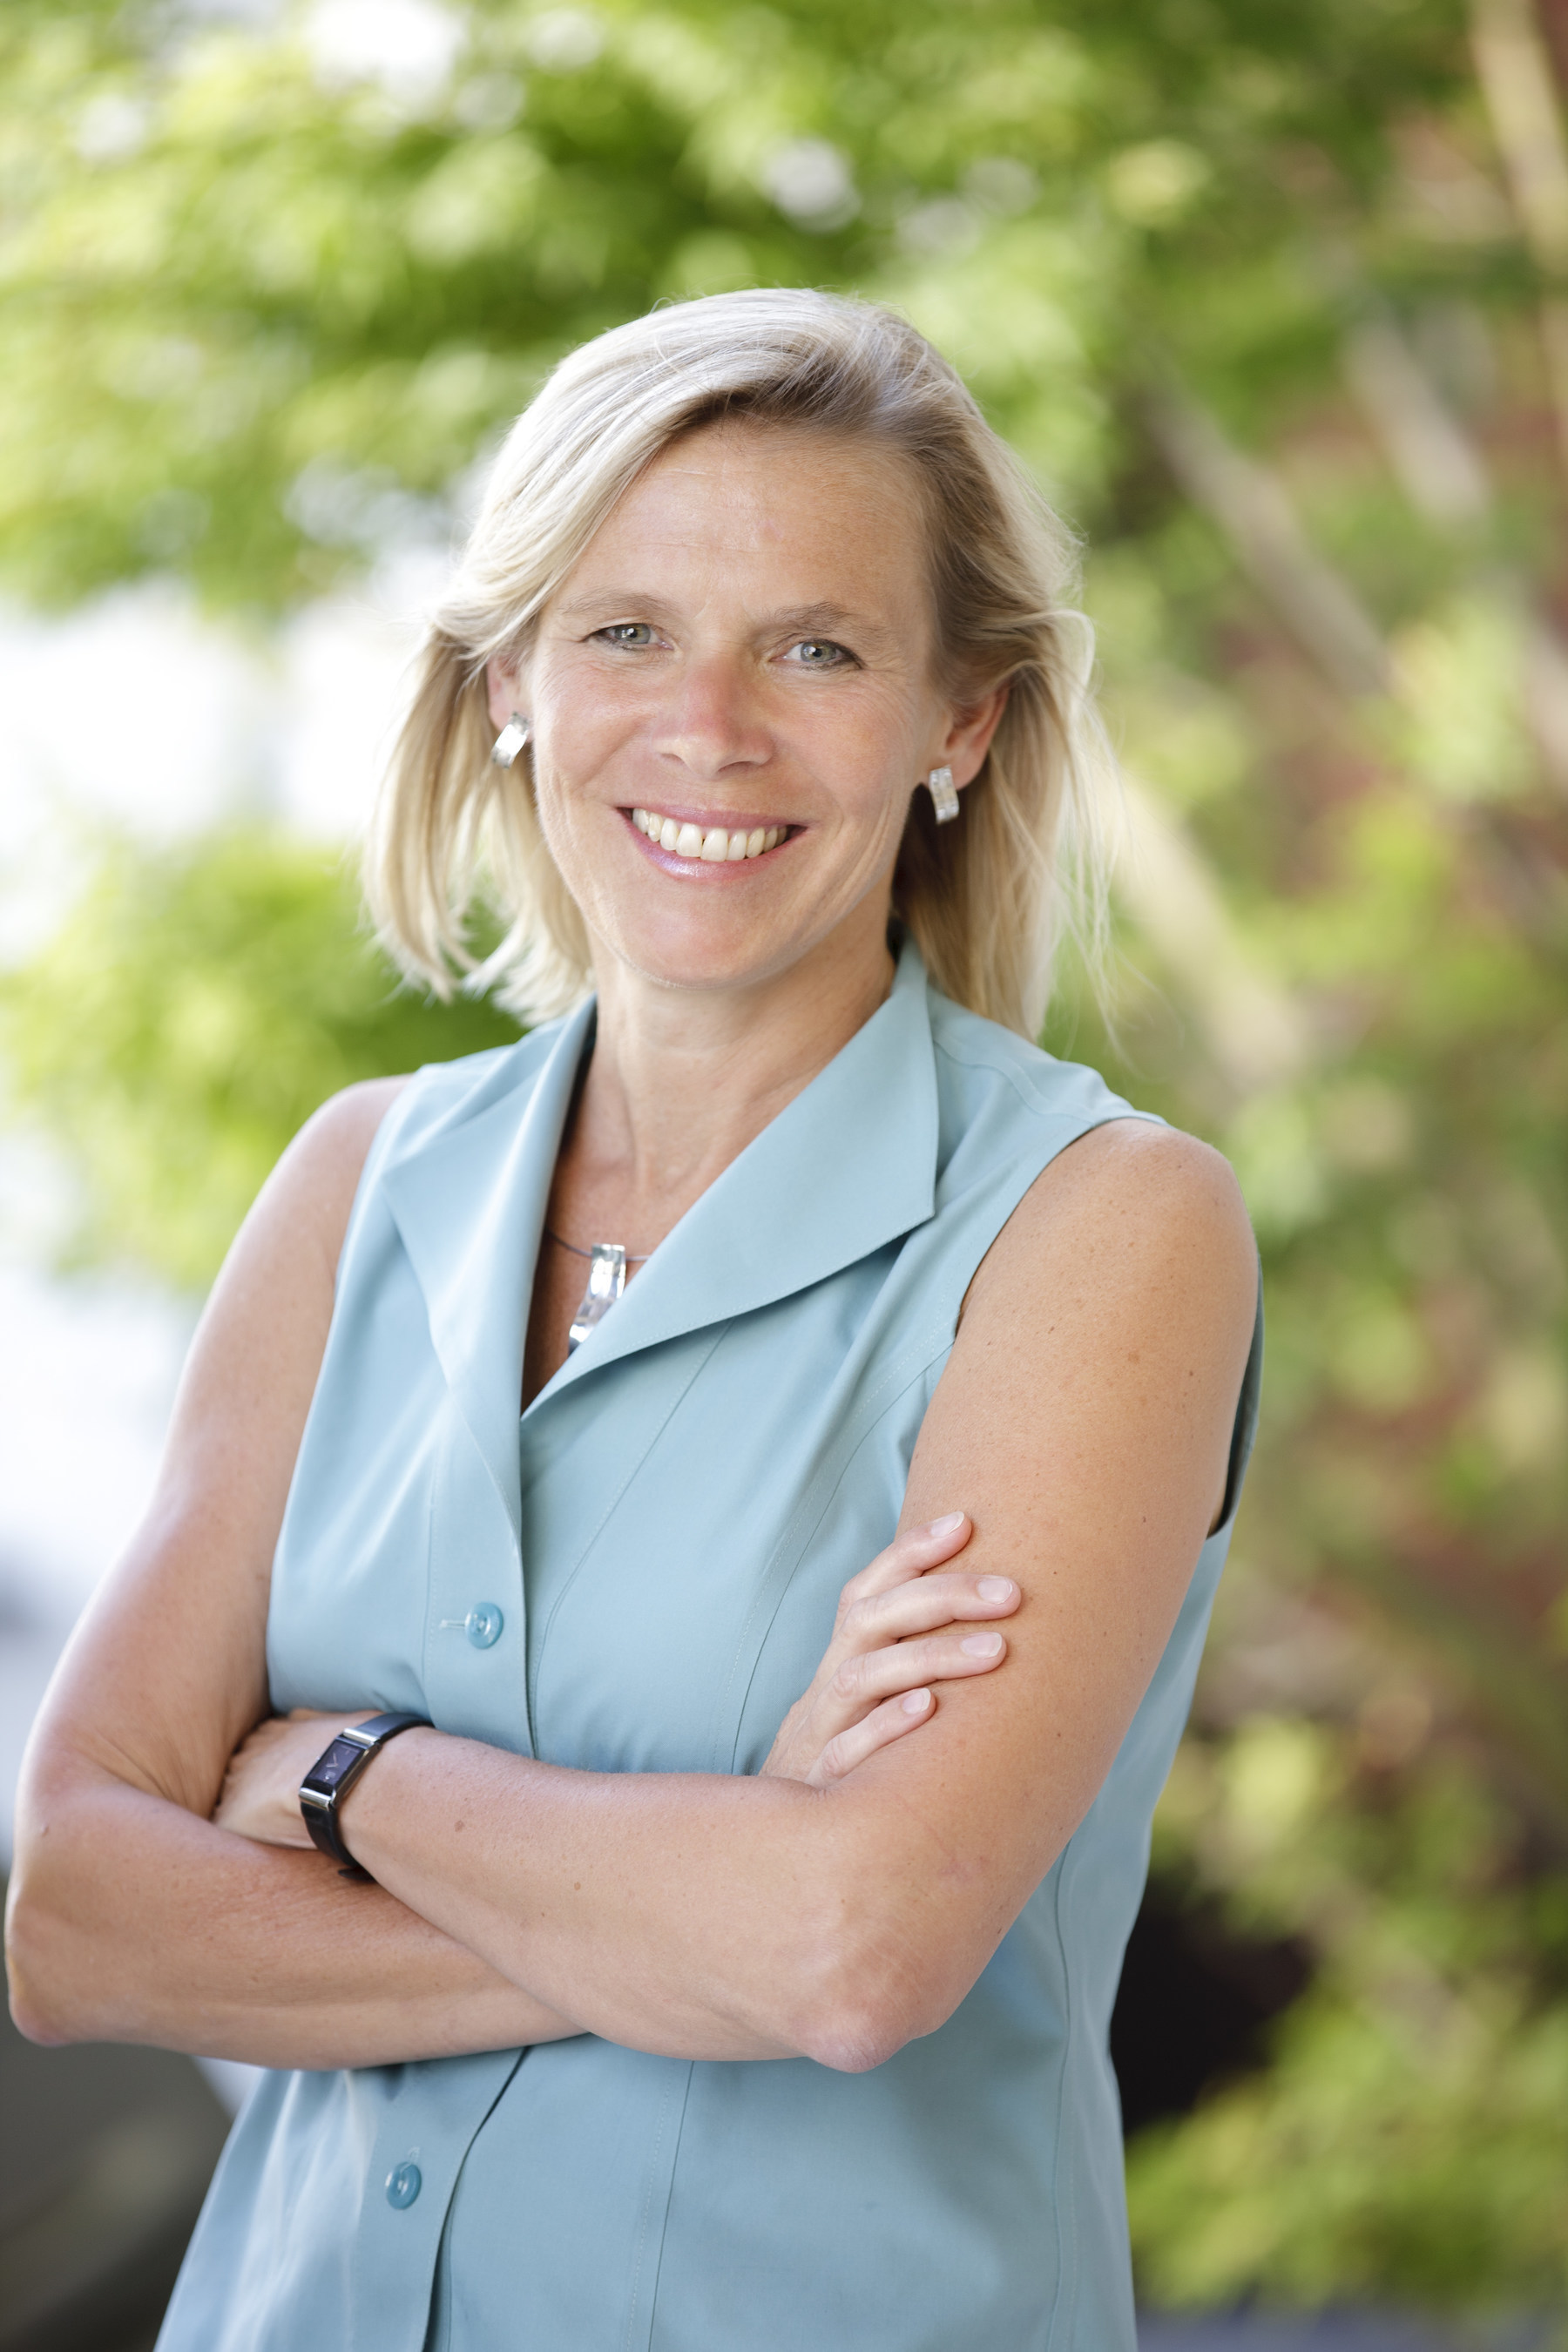 SunEdison Appoints Cathy Zoi As CEO of SunEdison's Rural Electric Utility Company